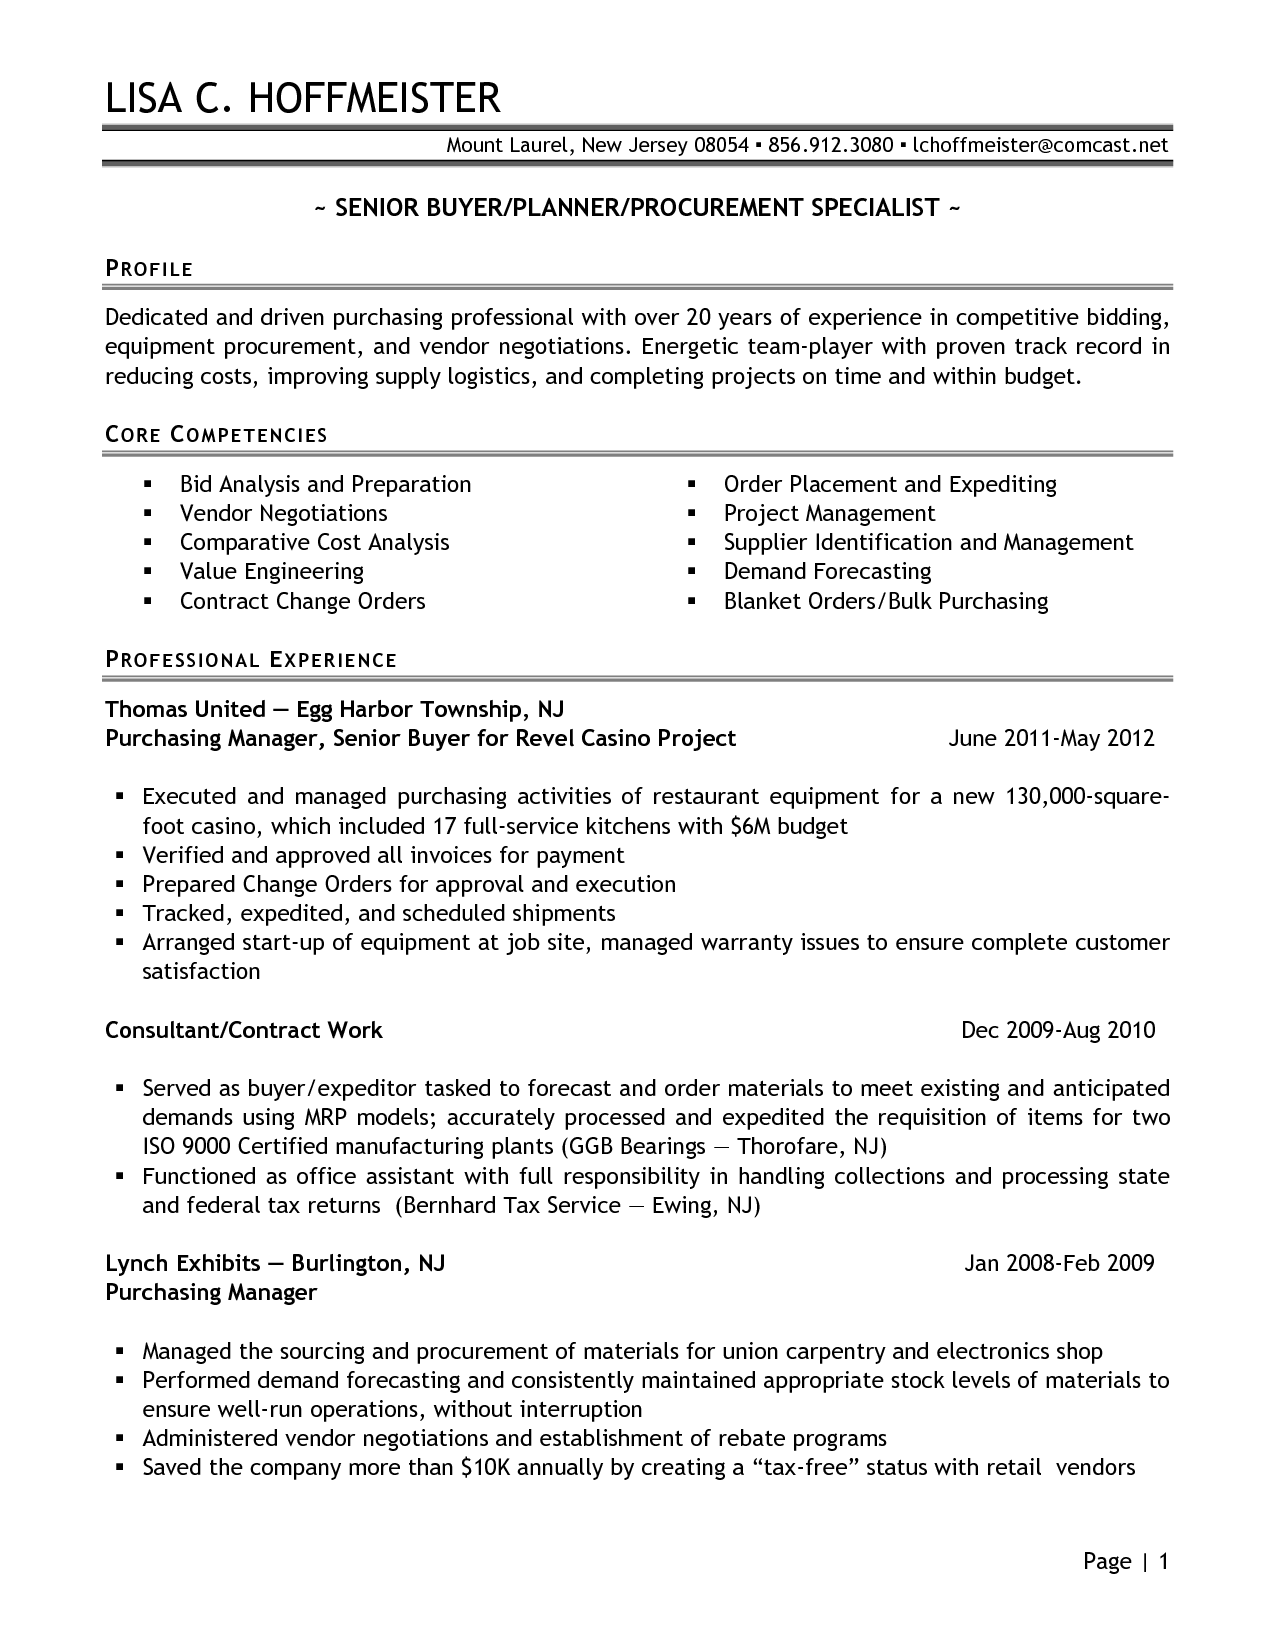 Procurement Analyst Cover Letter Senior Logistic Management Resume Senior Buyer Purchasing